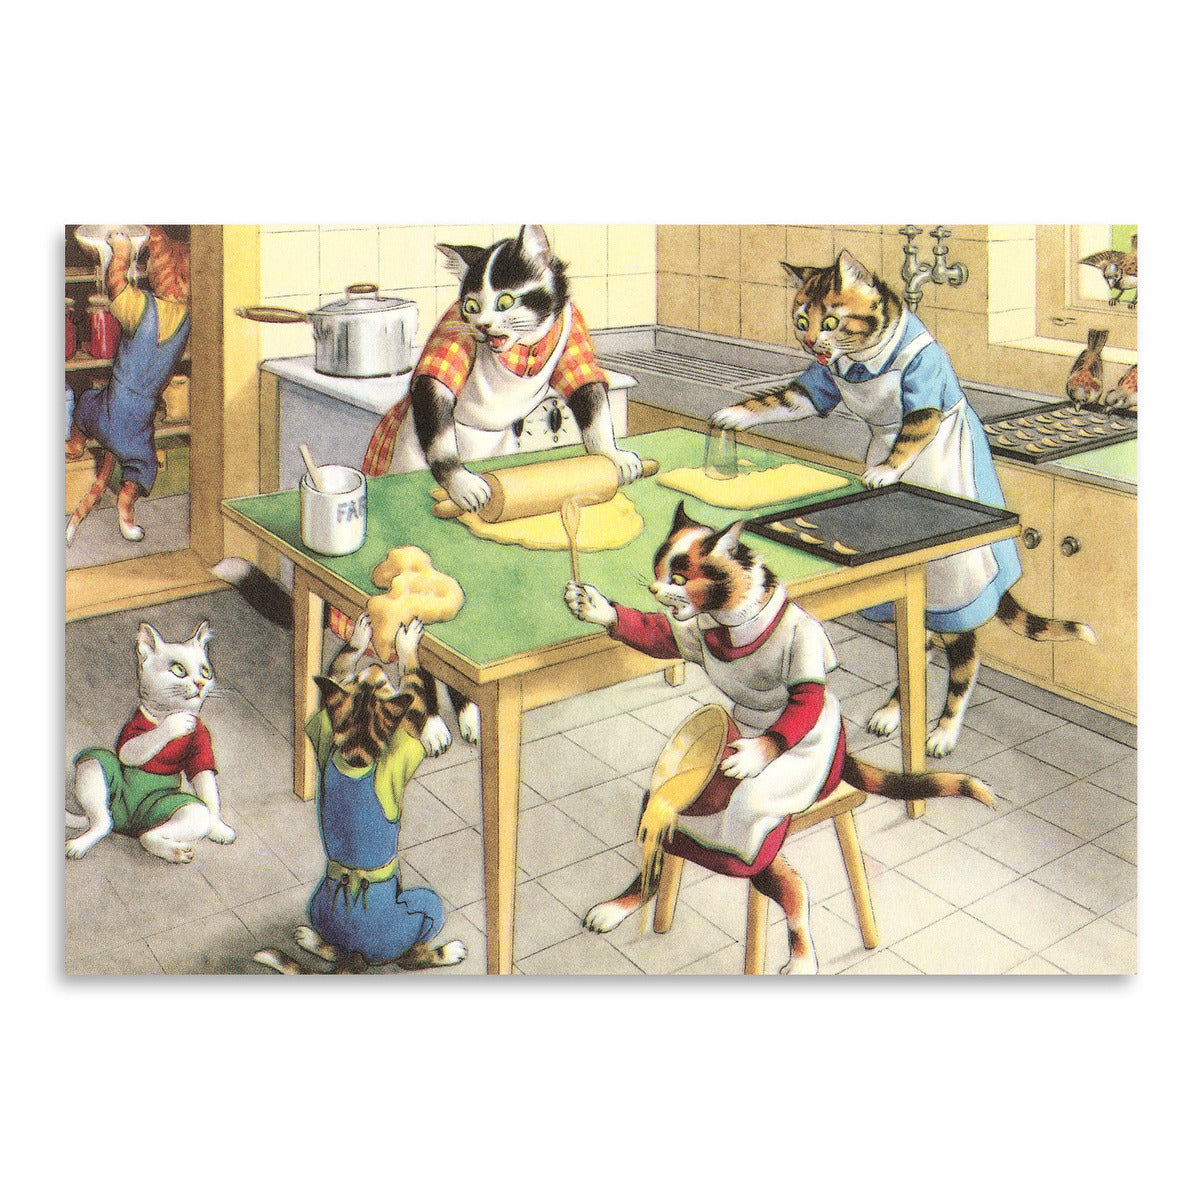 Cooking With The Crazy Cats Family by Found Image Press Art Print - Art Print - Americanflat